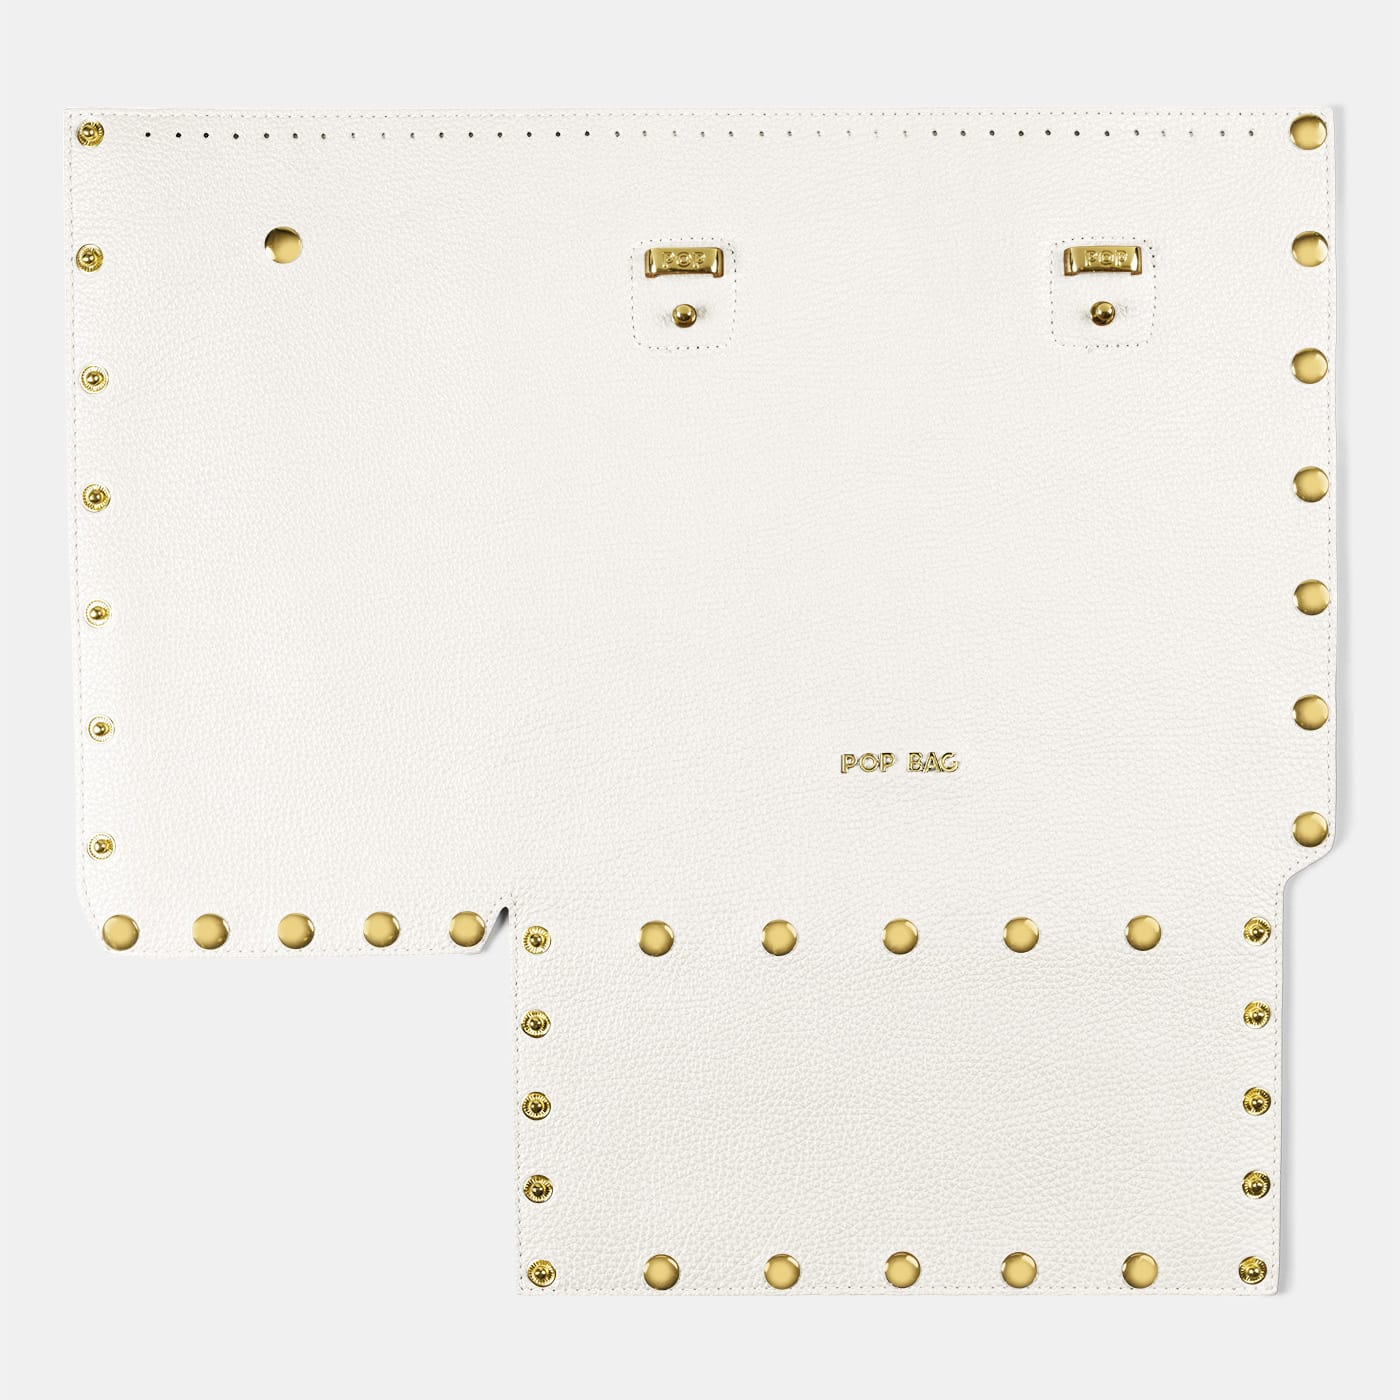 Pop Dolly Front Panel - White - Large